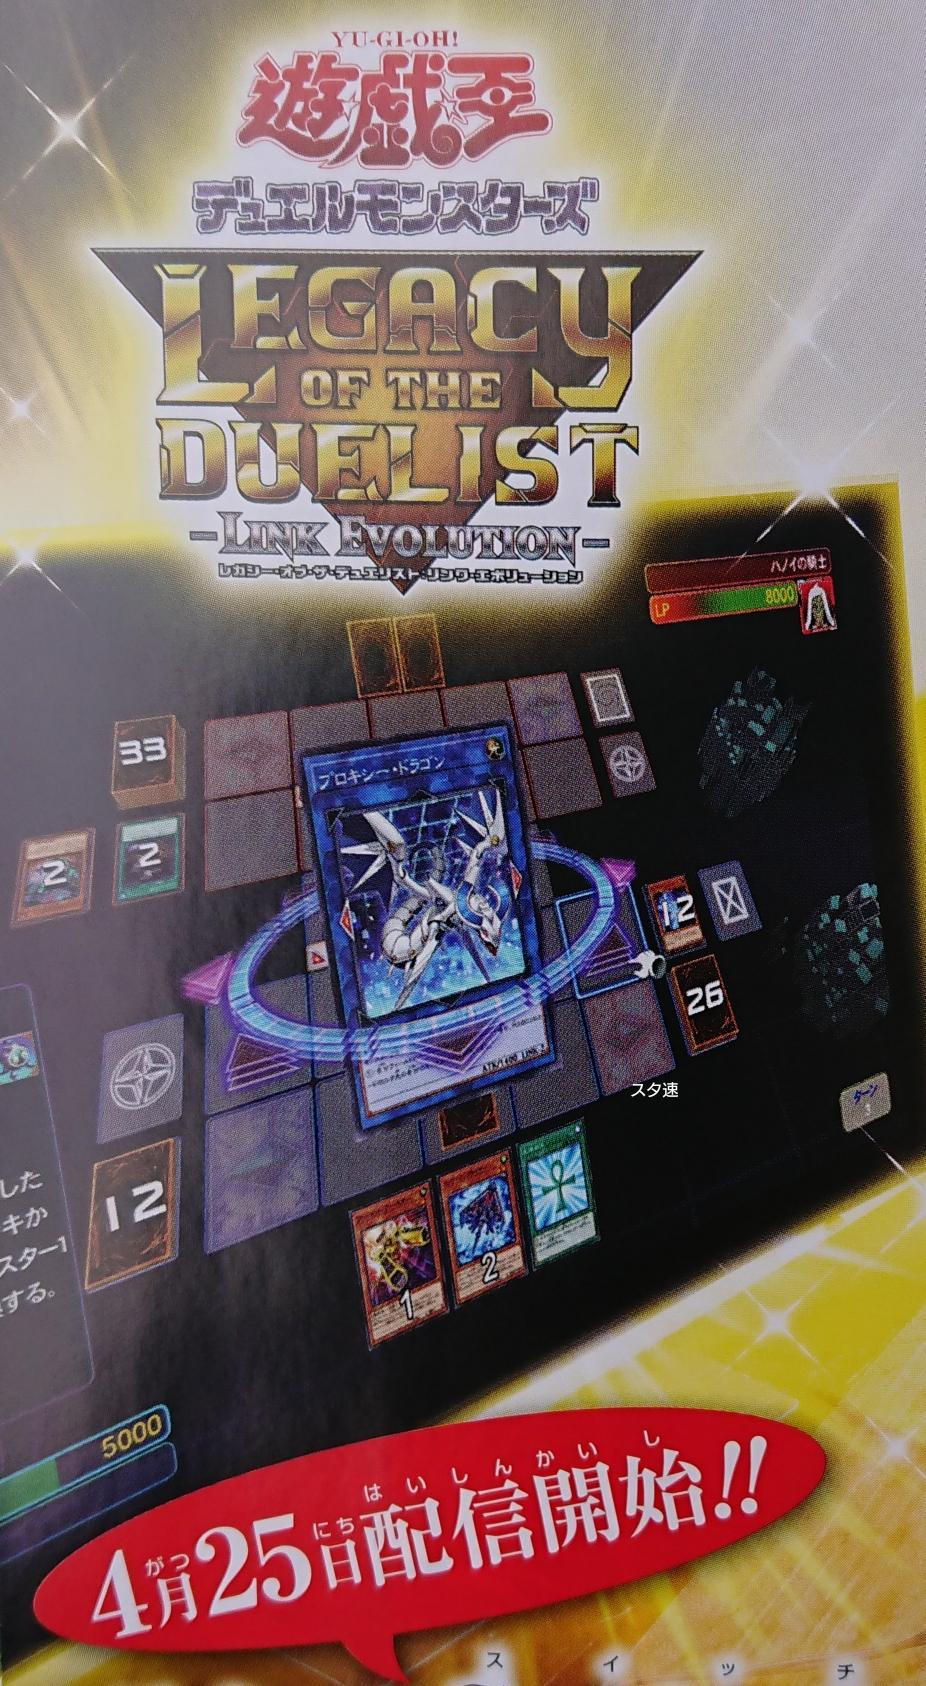 The Organization | More Legacy of the Duelist: Link Evolution news